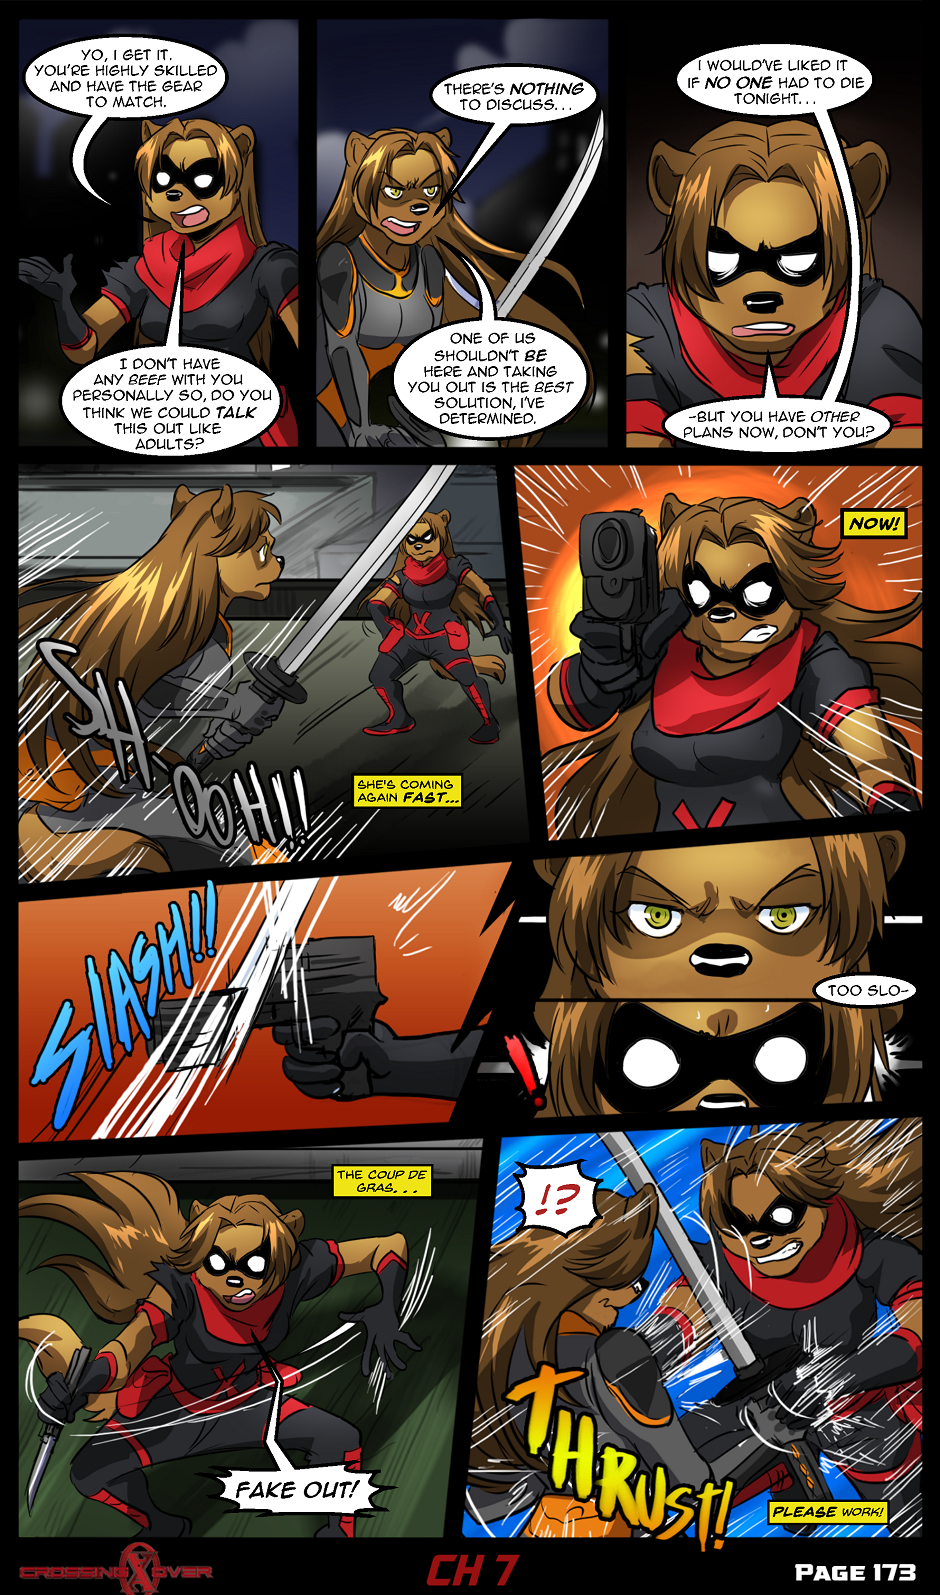 Page 173 (Ch 7)